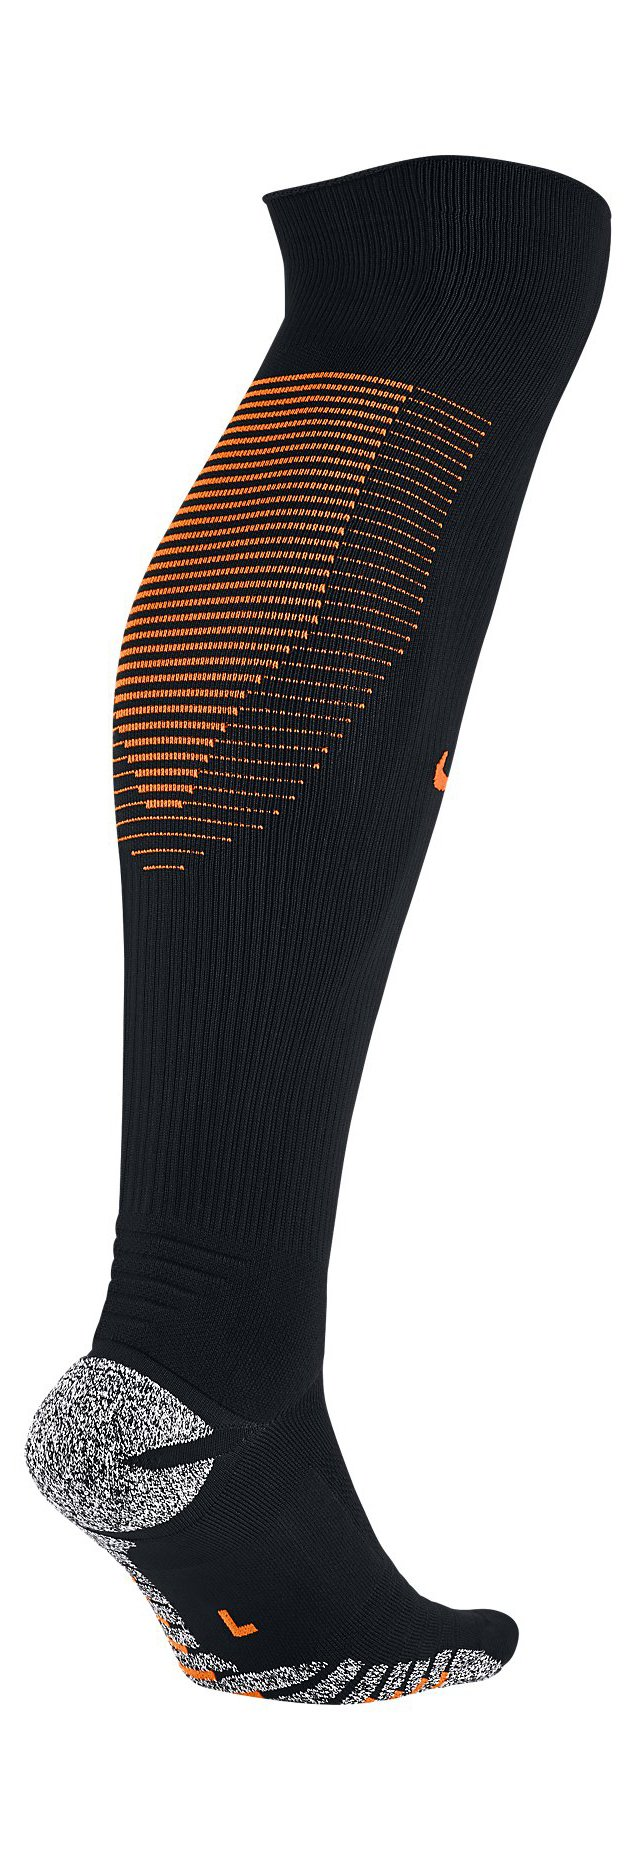 Stulpny NikeGrip Strike Lightweight Over-the-Calf